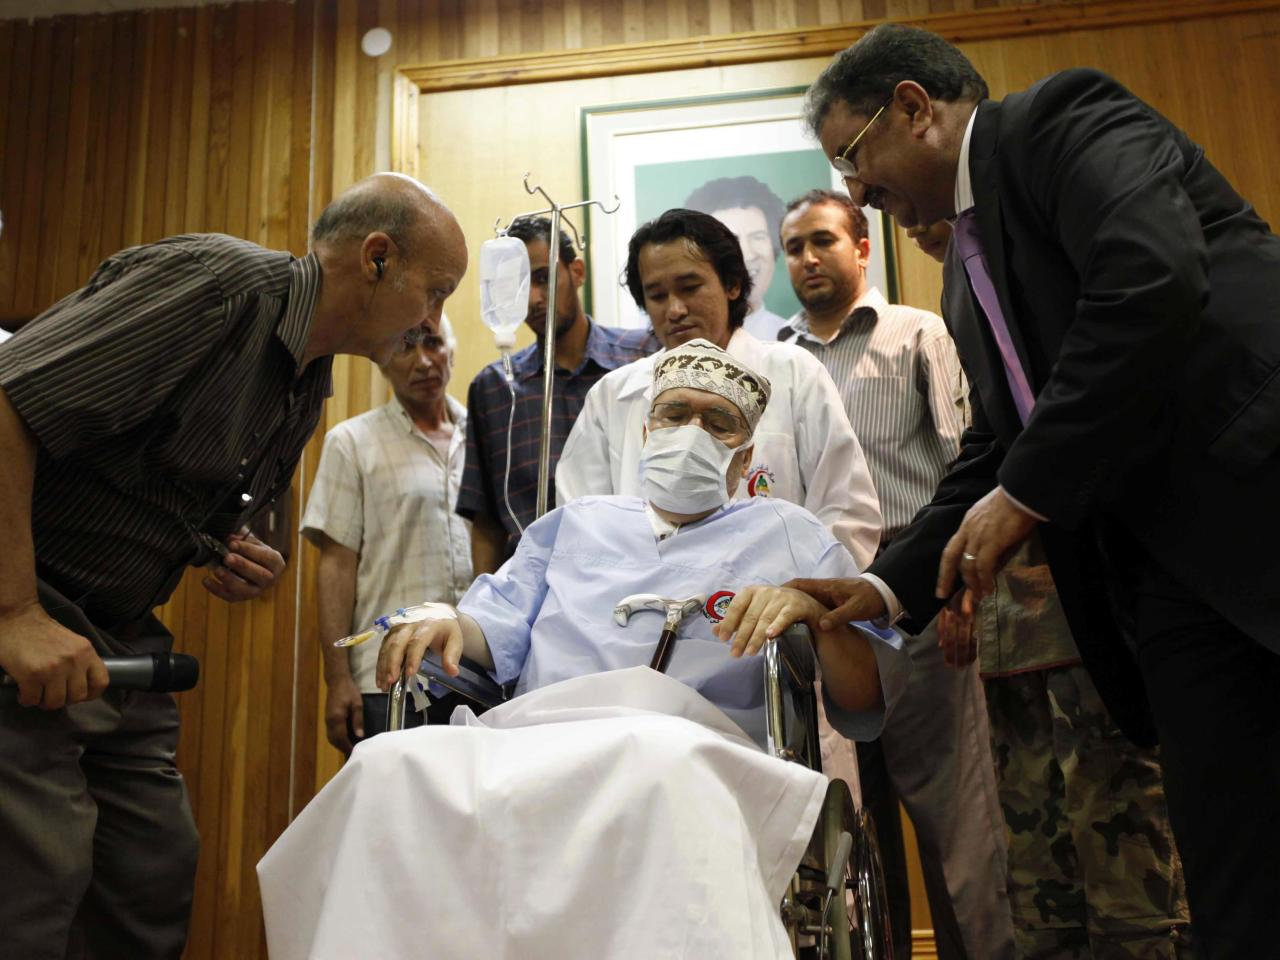 Abdel Basset al-Megrahi sits in a wheelchair in his room at a hospital in Tripoli September 9, 2009. The dying Libyan convicted of the 1988 Lockerbie bombing and freed on compassionate grounds despite U.S. objections was met by African parliamentary deputies on Wednesday in an apparent public show of support. REUTERS/Ismail Zetouny